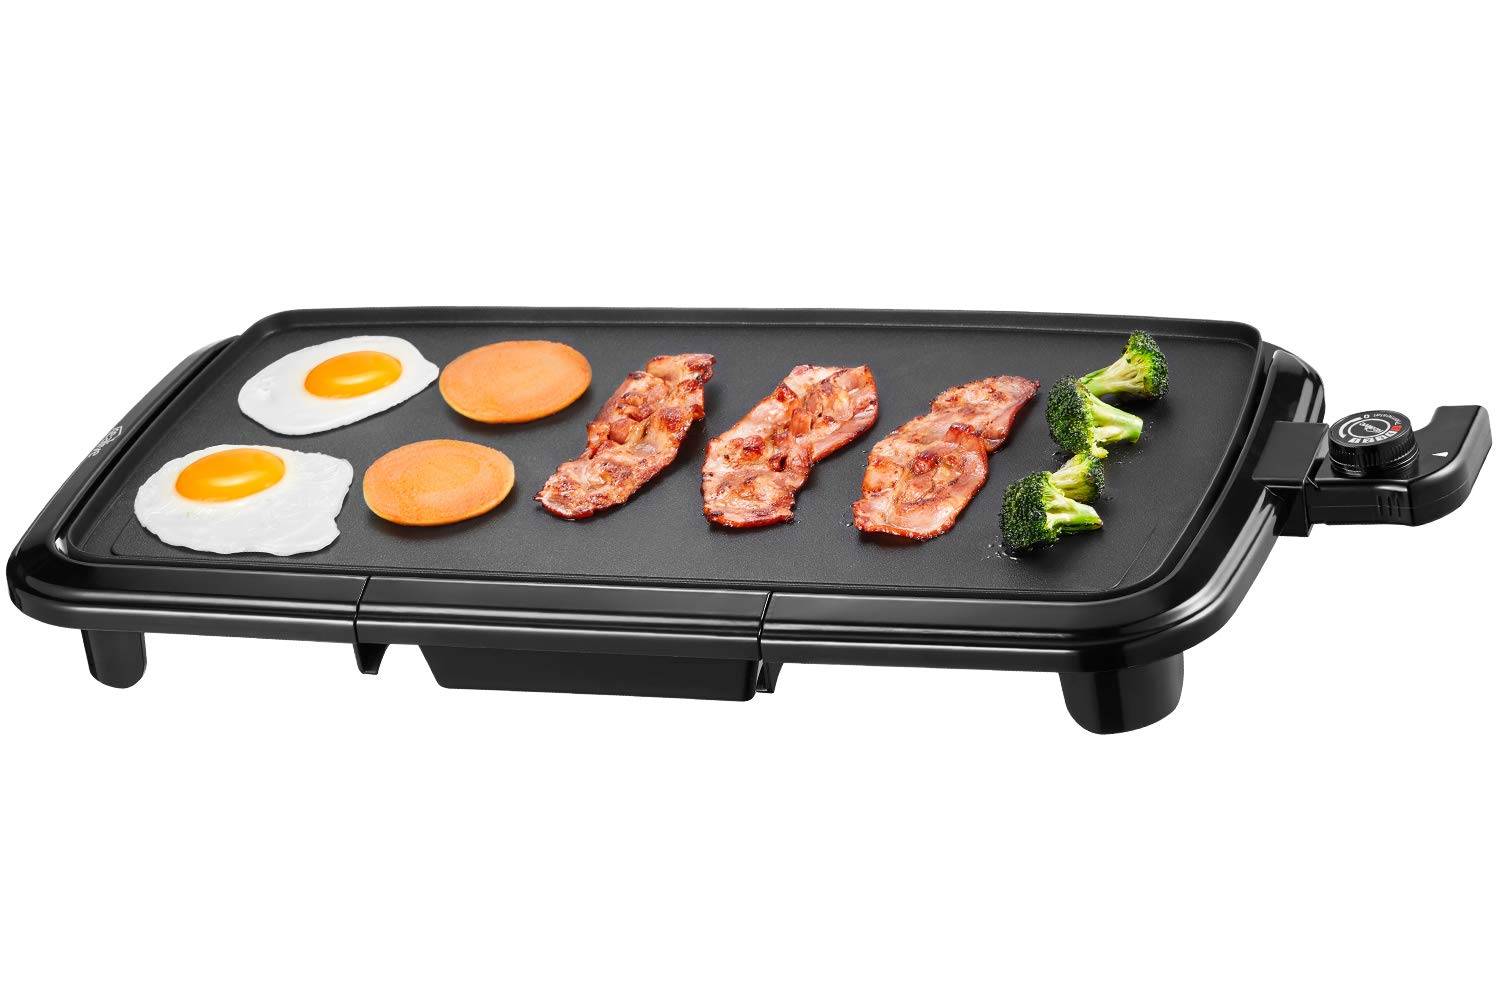 Kealive Griddle, Family-Sized Electric Grill Griddle 1500W with Drip Tray, Non-stick, 10''x20'', Black by kealive